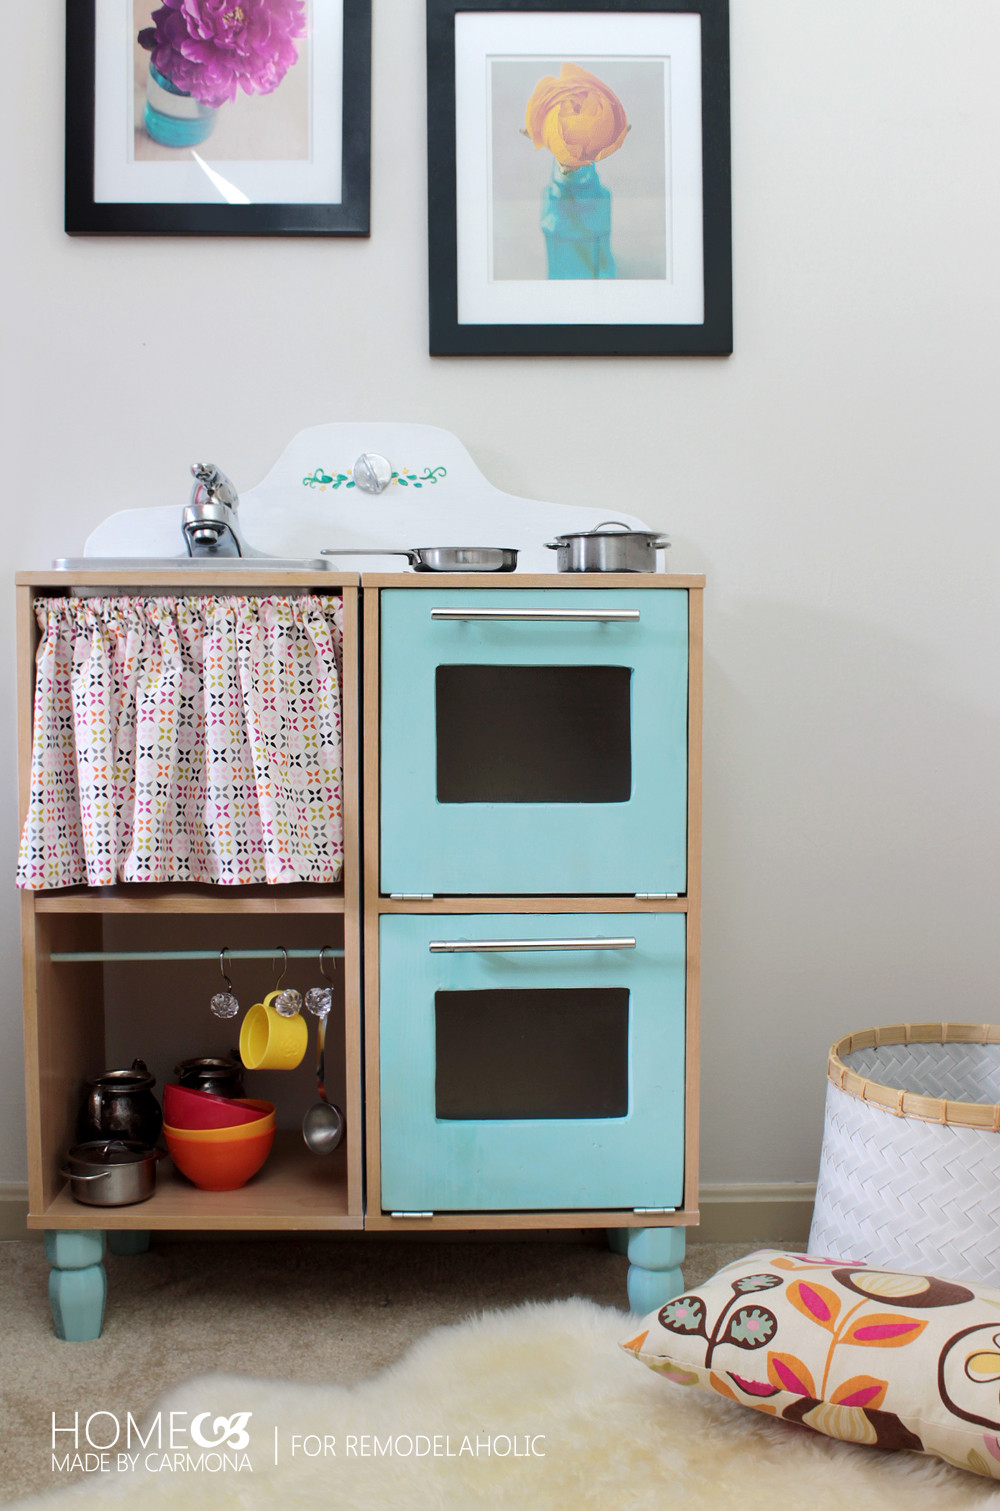 Best ideas about DIY Kids Kitchens . Save or Pin Remodelaholic Now.